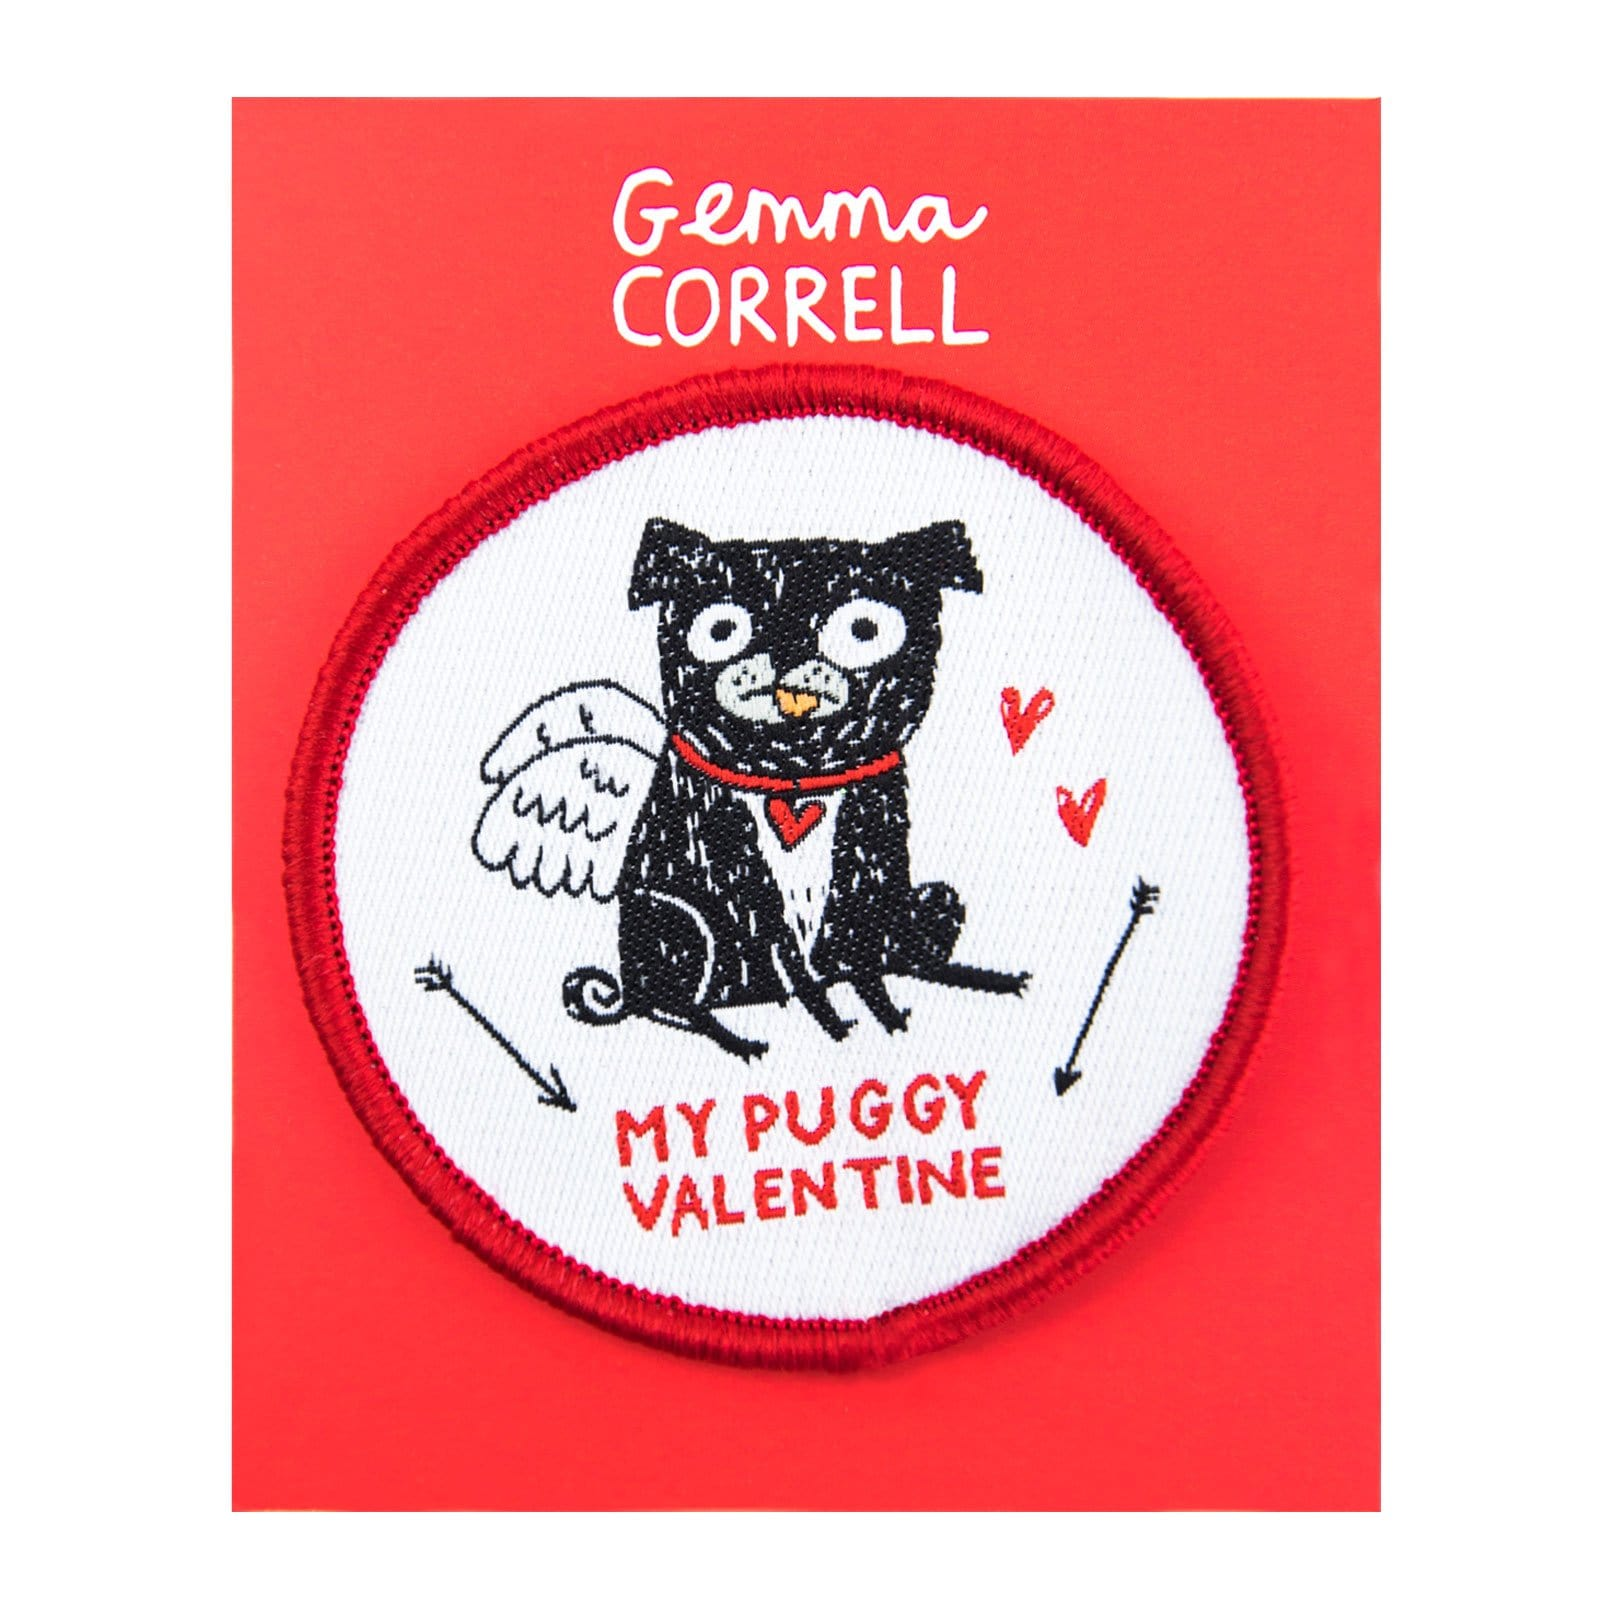 My Puggy Valentine Woven Patch